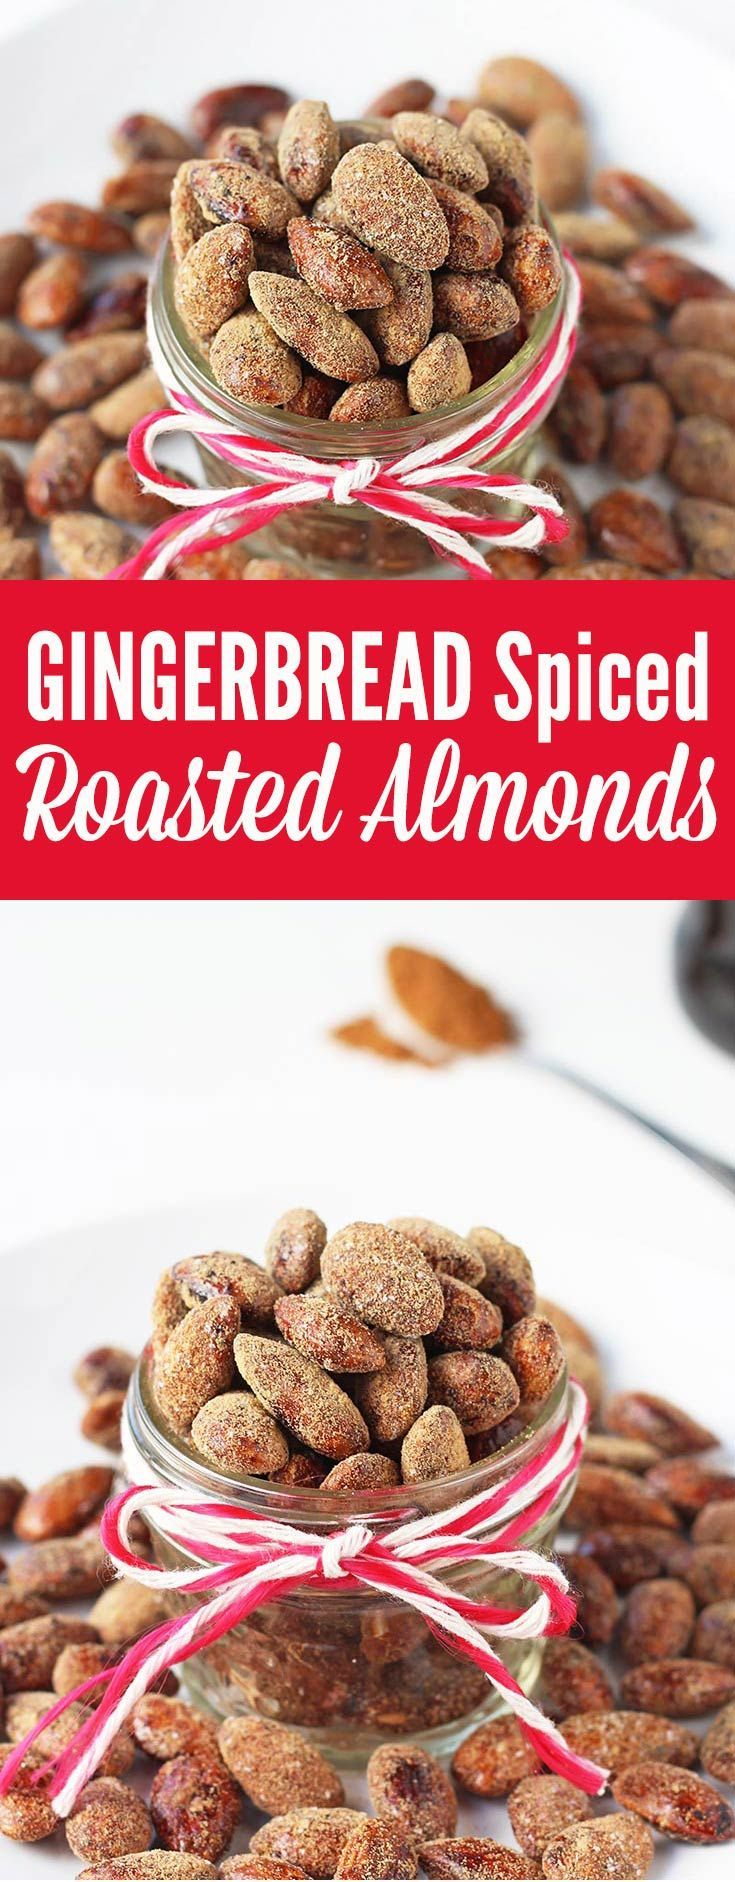 If you've ever been to German Christmas market, you know the incredible aroma of roasted almonds. This is a homemade version of sweet, crunchy roasted almonds with gingerbread spice flavor. They also make a fantastic homemade, edible gift.